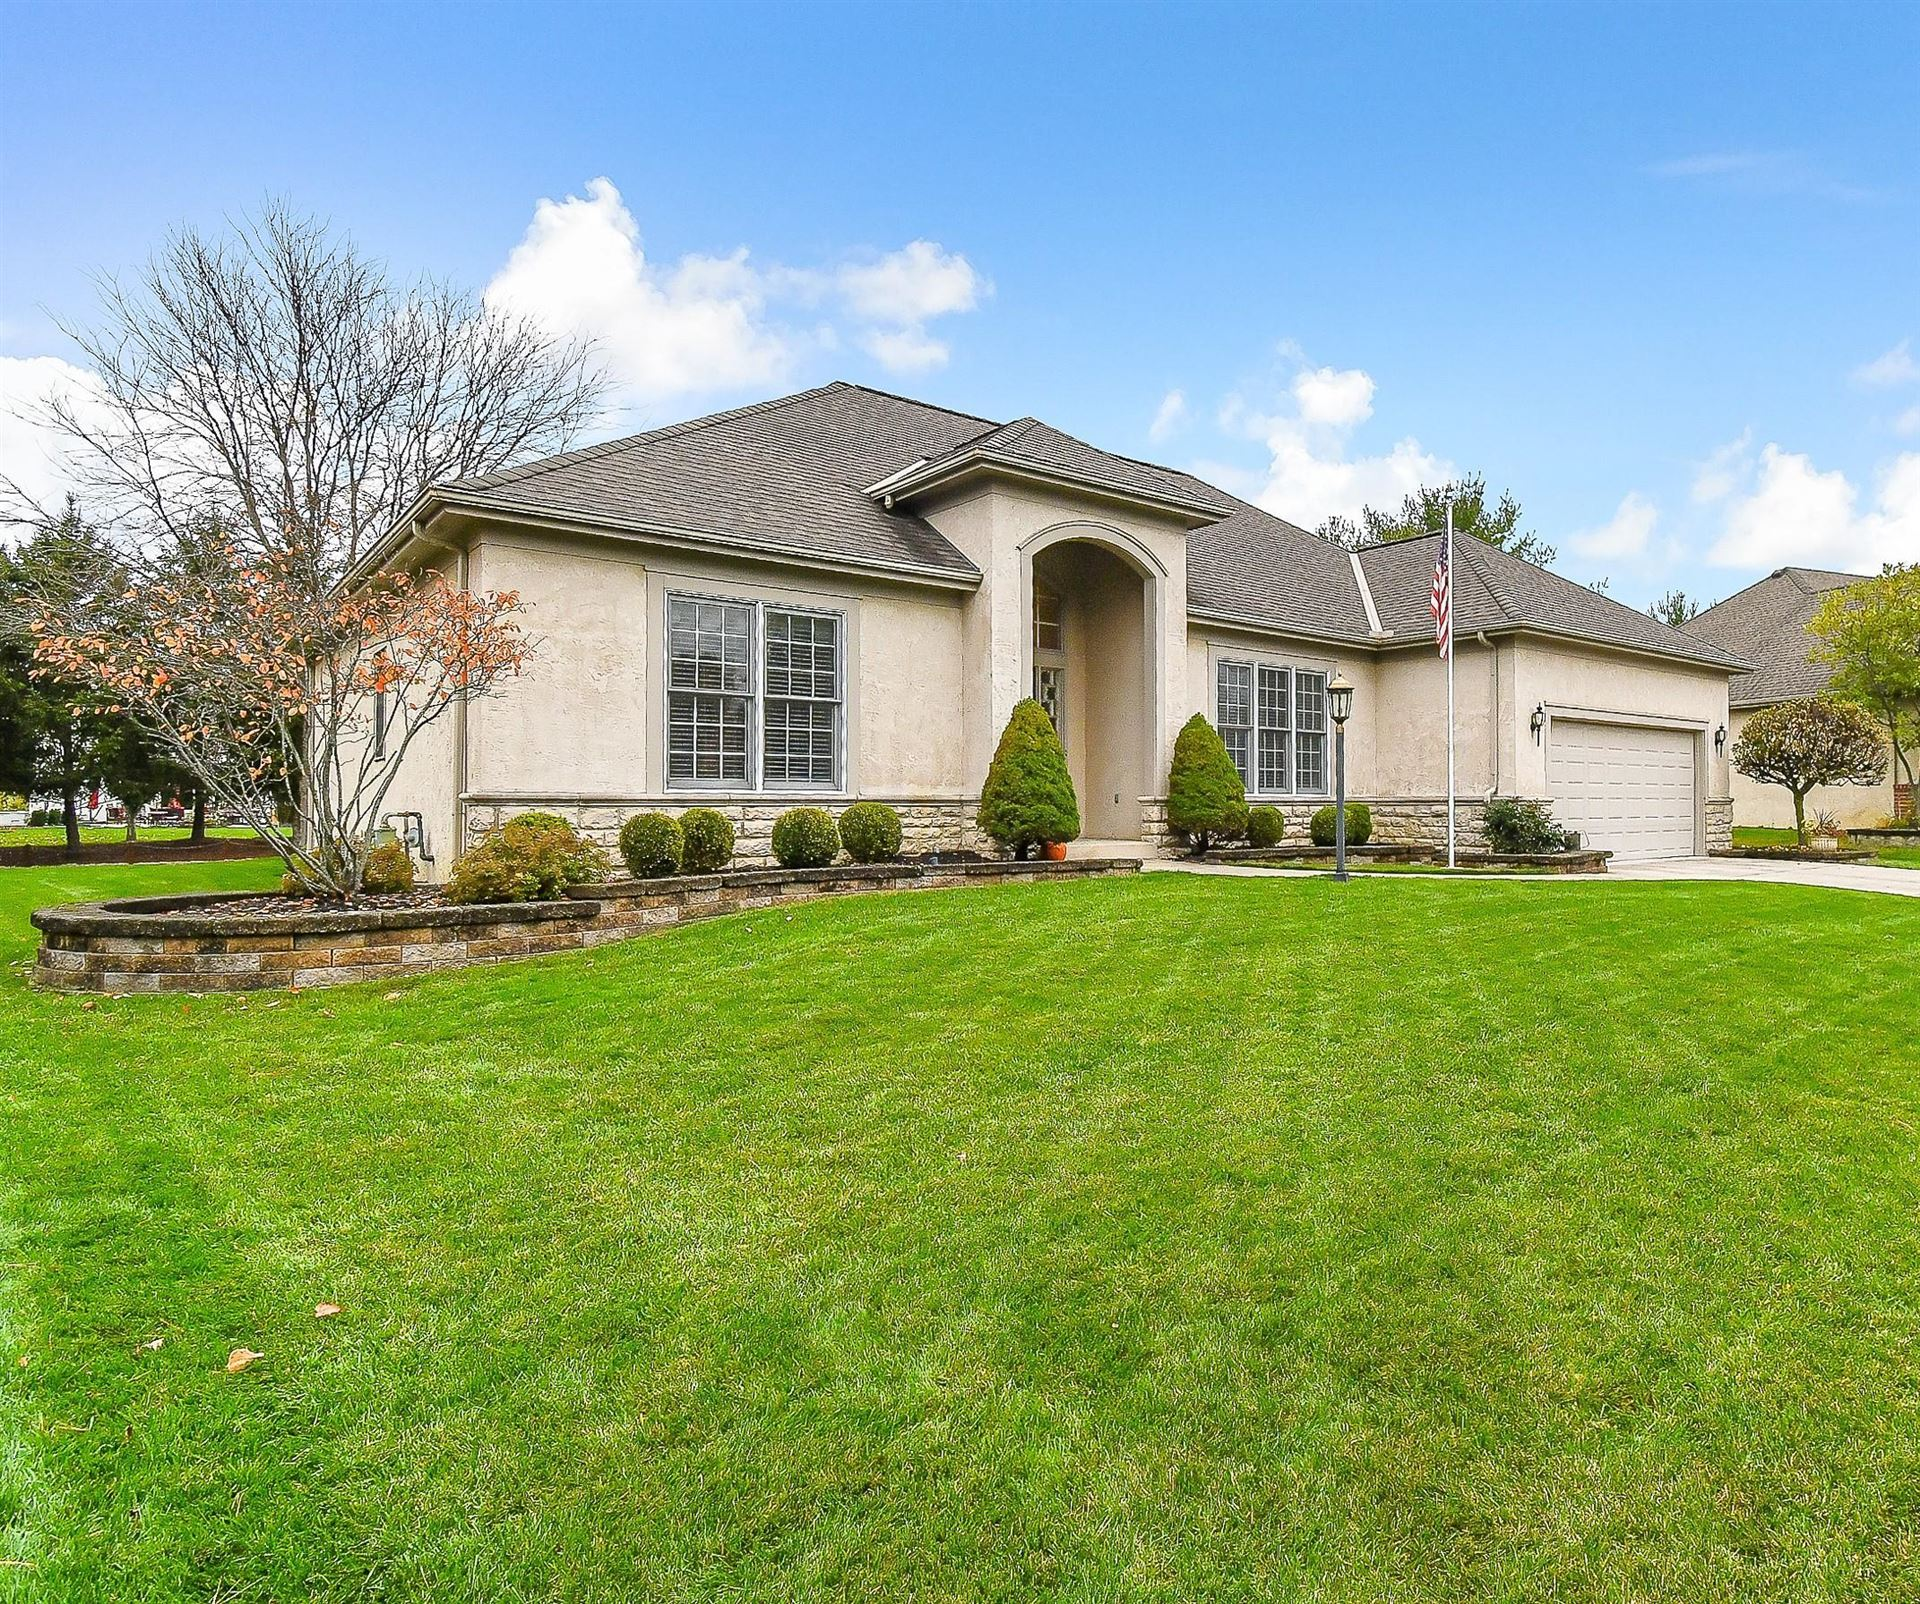 Photo of 5775 Victoria Court, Westerville, OH 43082 (MLS # 220038401)